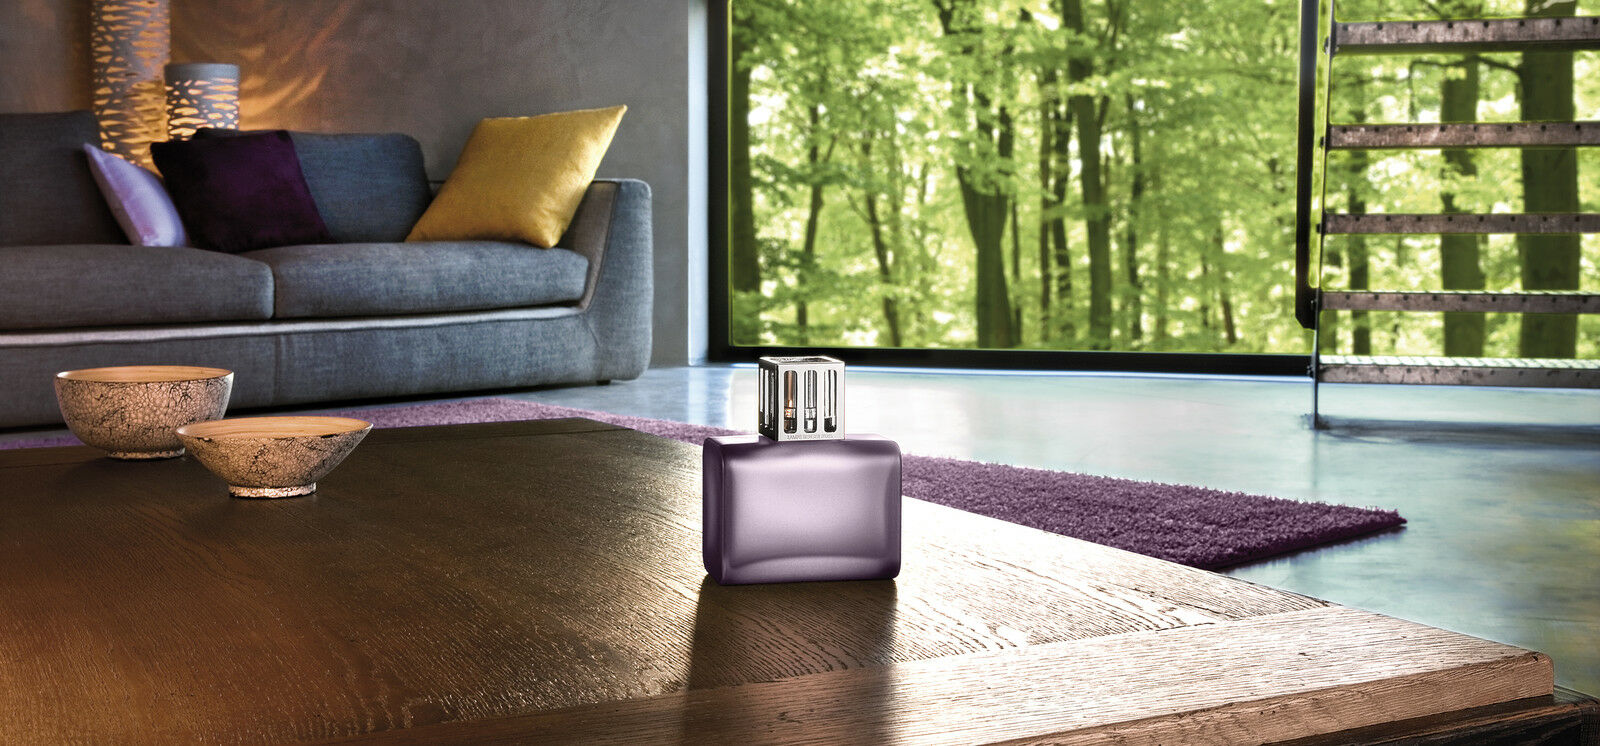 Lampe Berger and Gifts